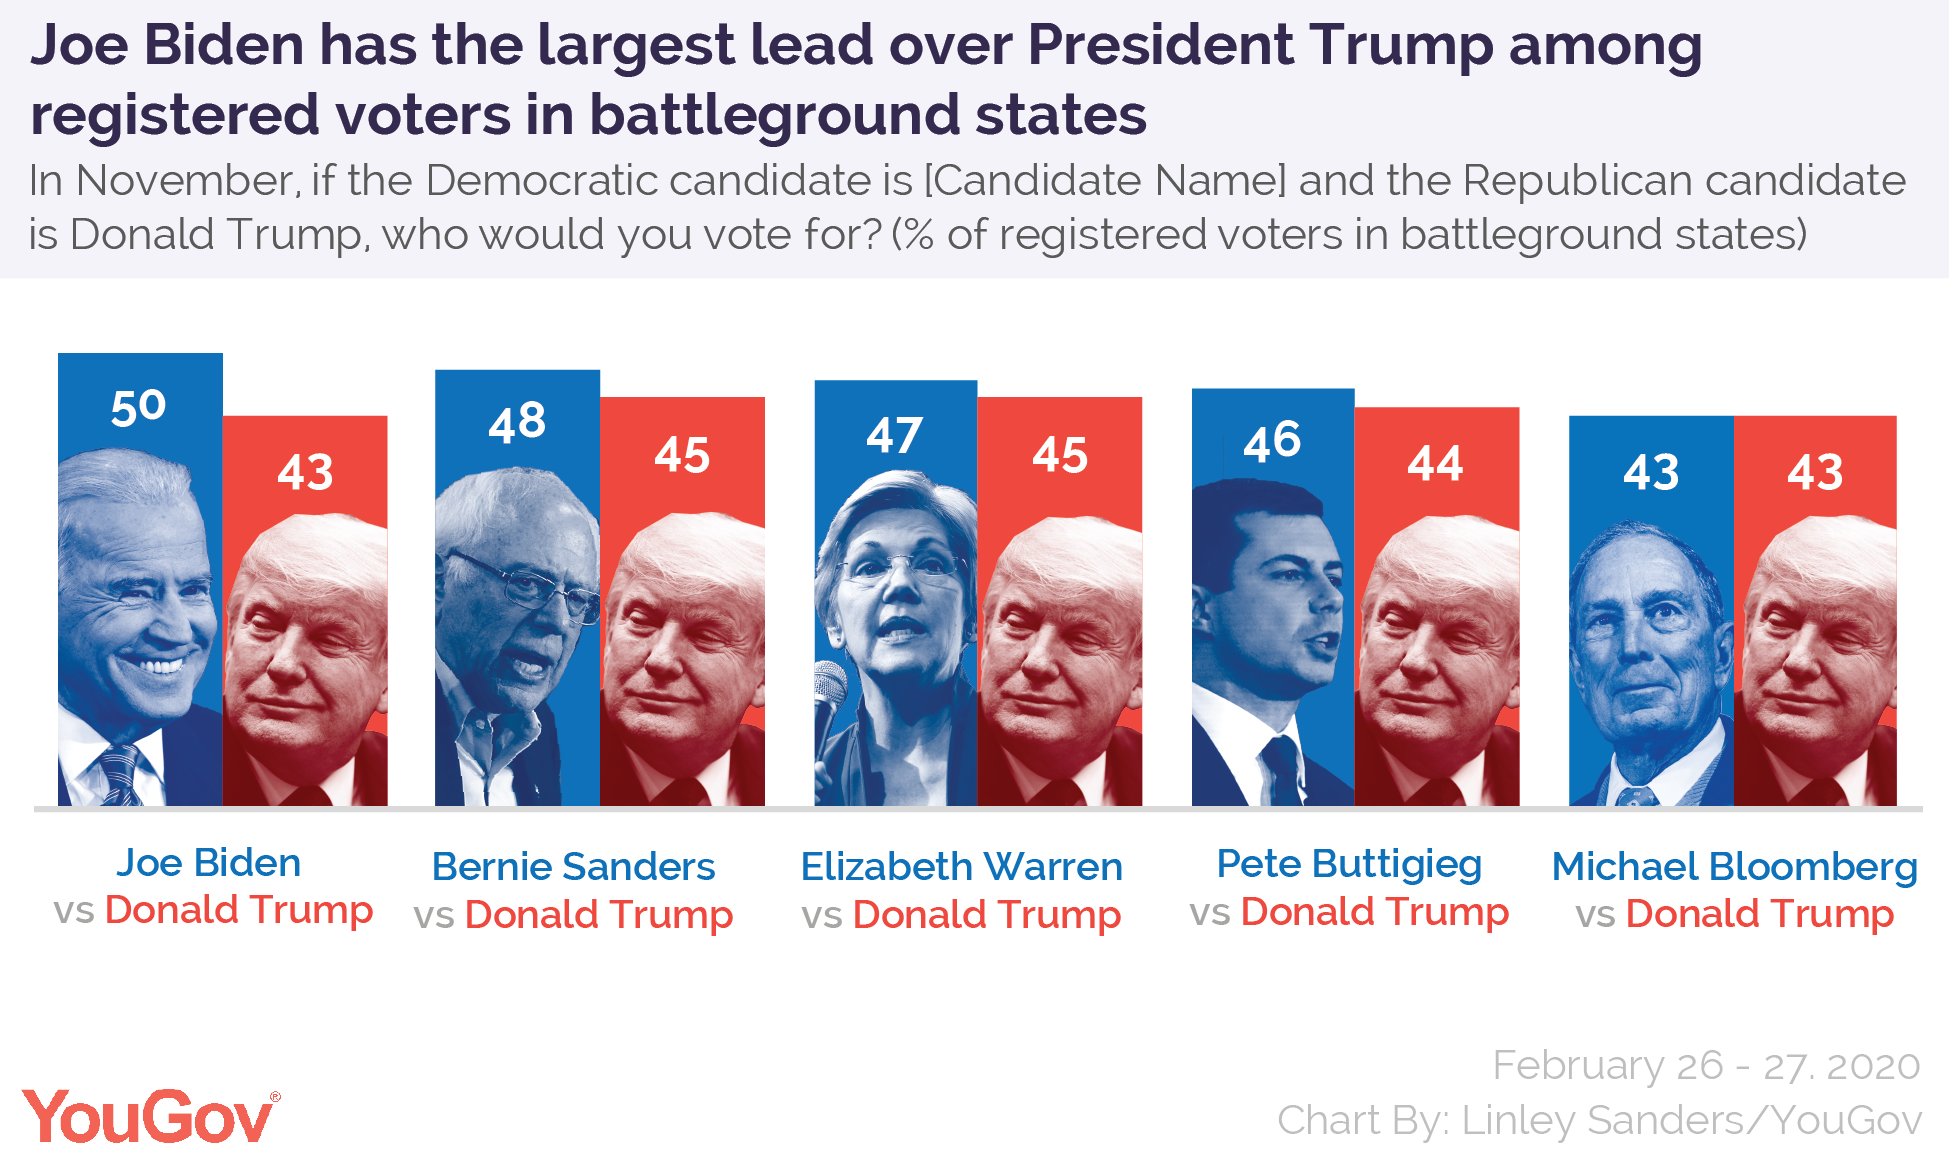 Former Vice President Joe Biden has the largest lead over President Donald Trump among registered voters in battleground states